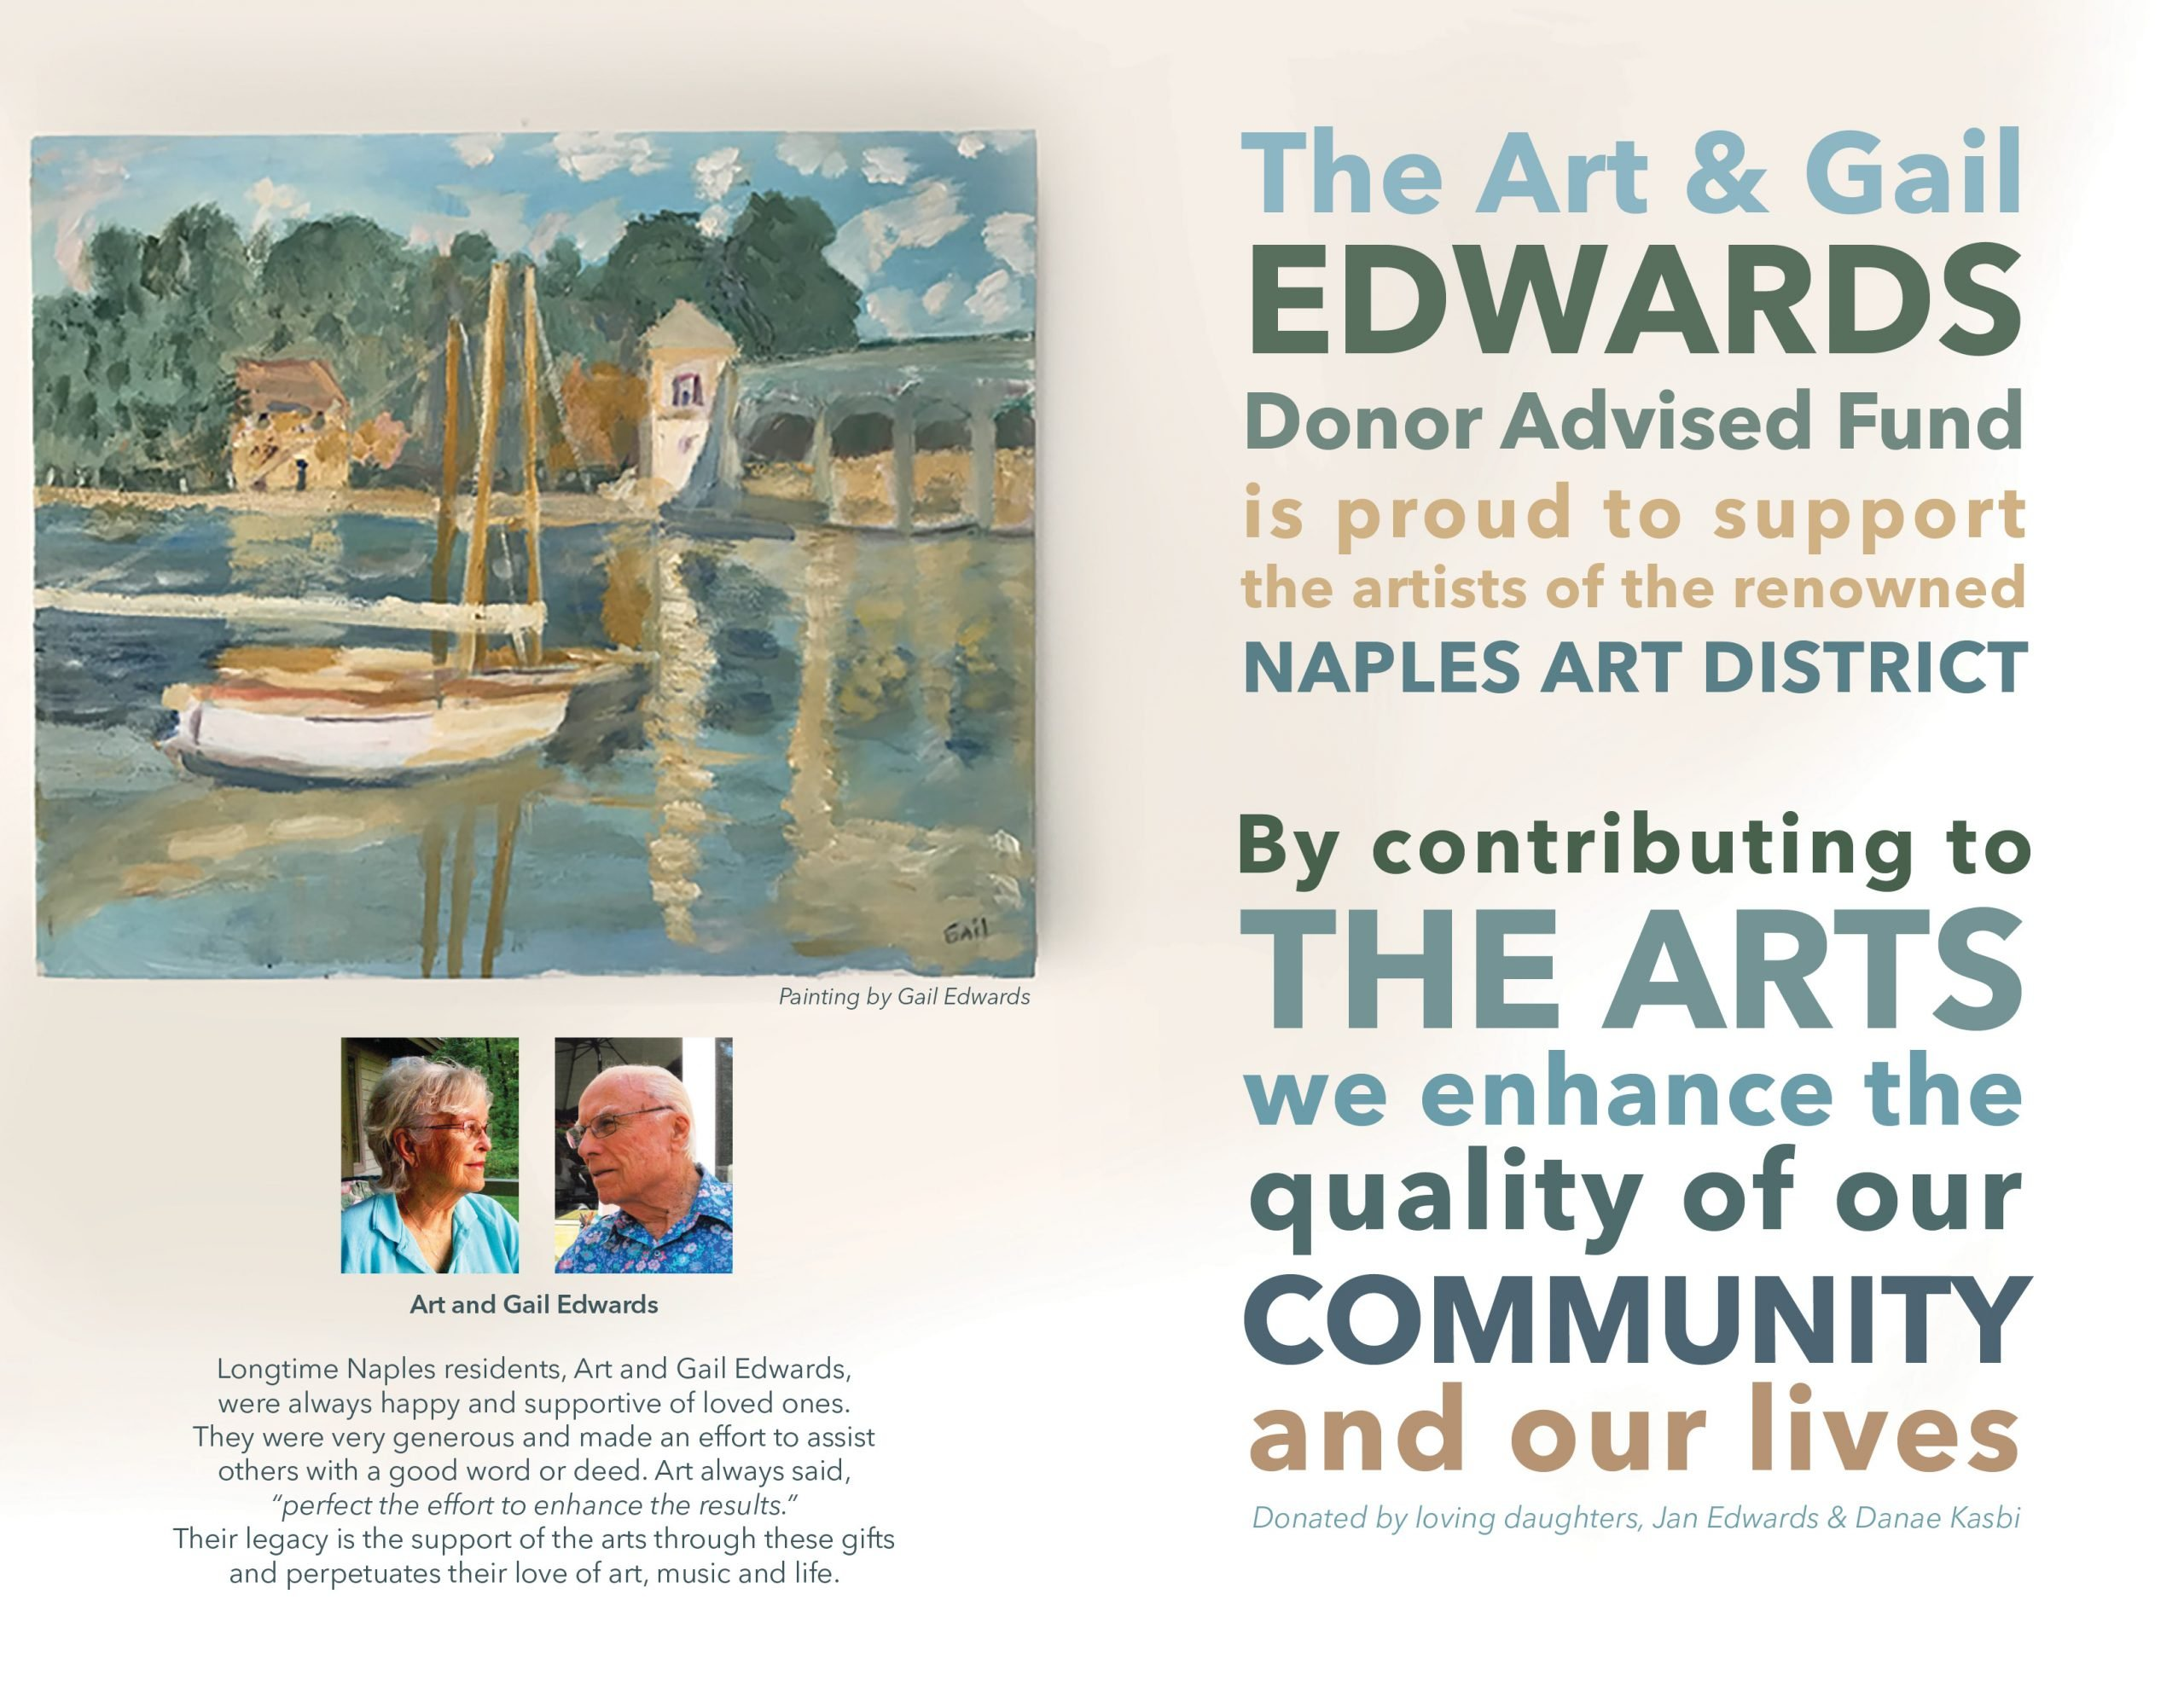 The Art & Gail Edwards Fund